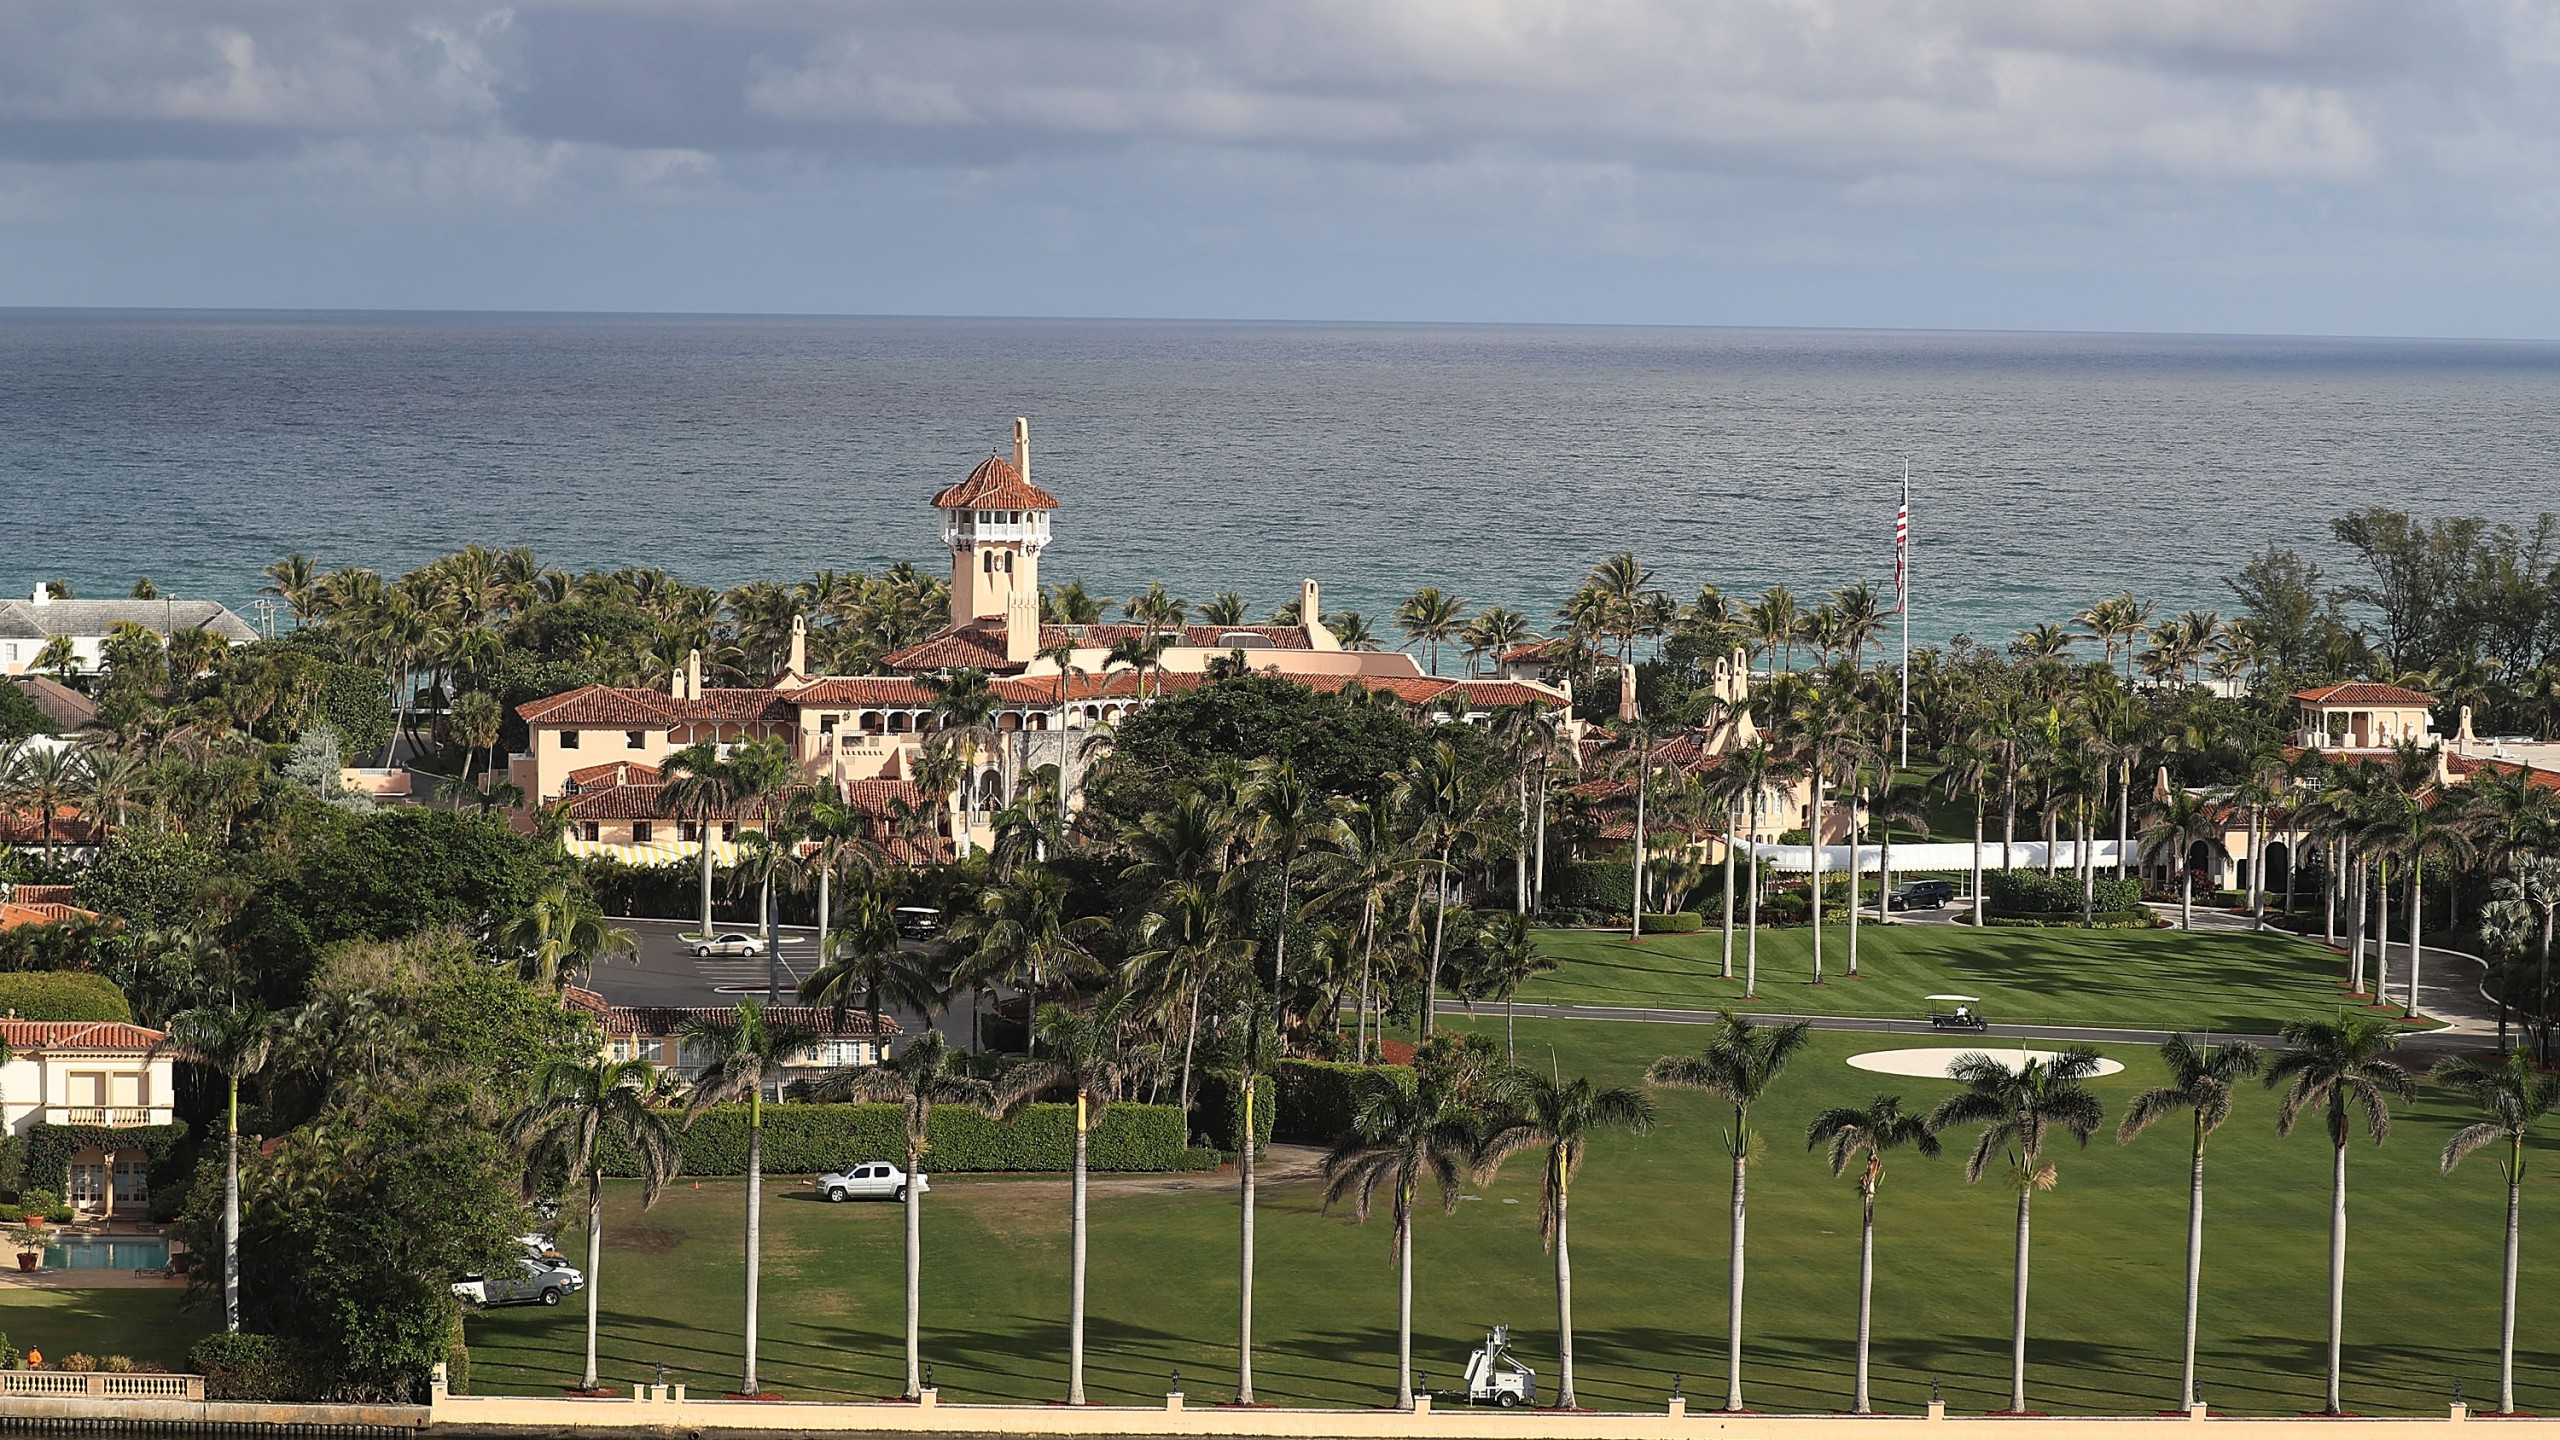 An aerial view of the Mar-a-Lago resort in Palm Beach, Florida, on January 11, 2018. (Credit: Joe Raedle/Getty Images)